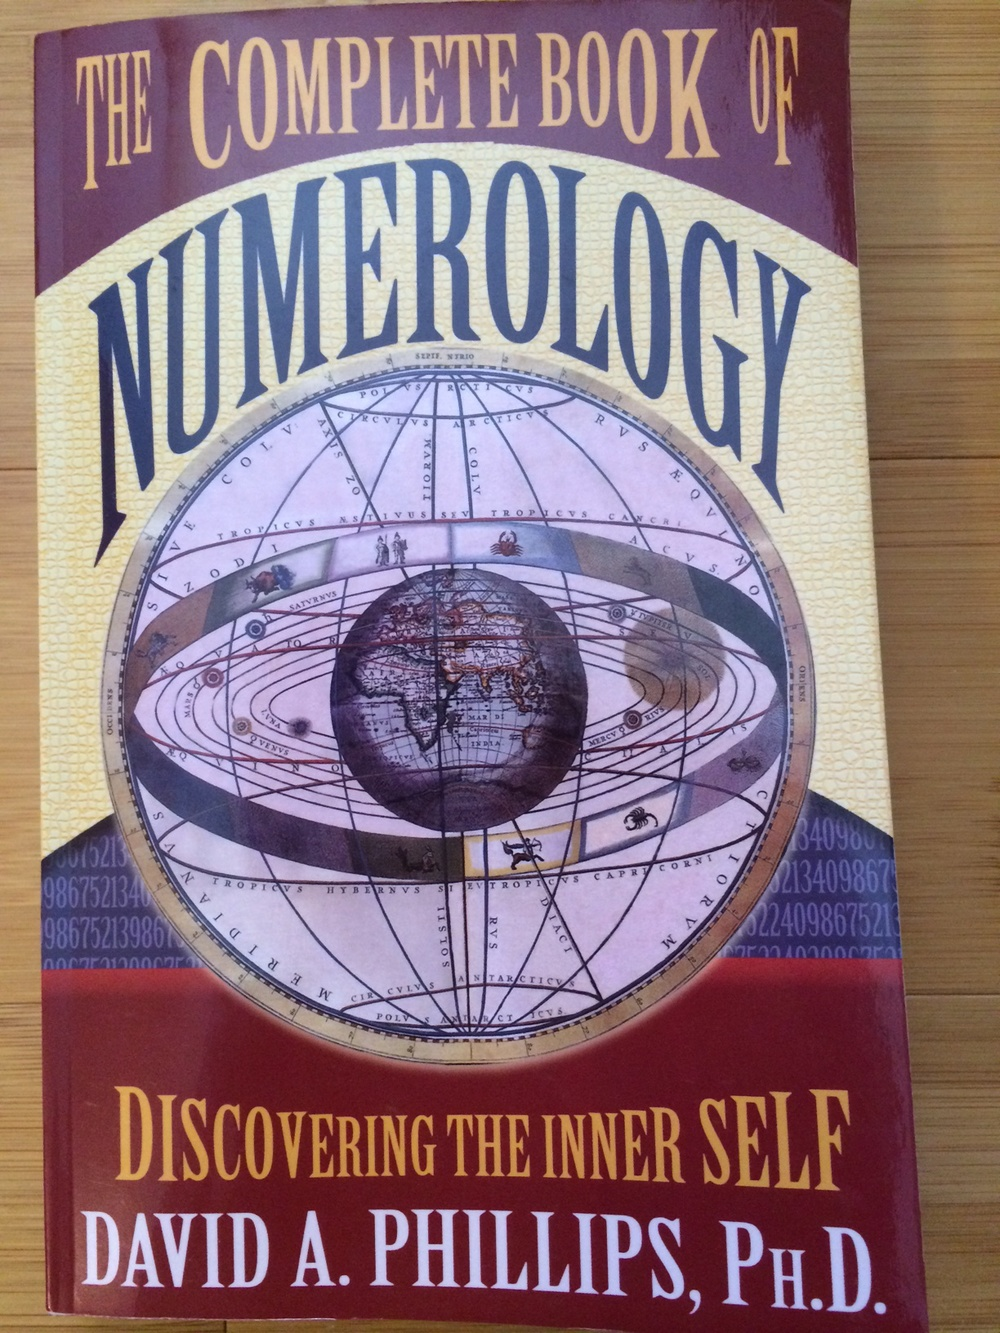 This is an excellent, user-friendly resource for anyone who wants to get started with numerology.